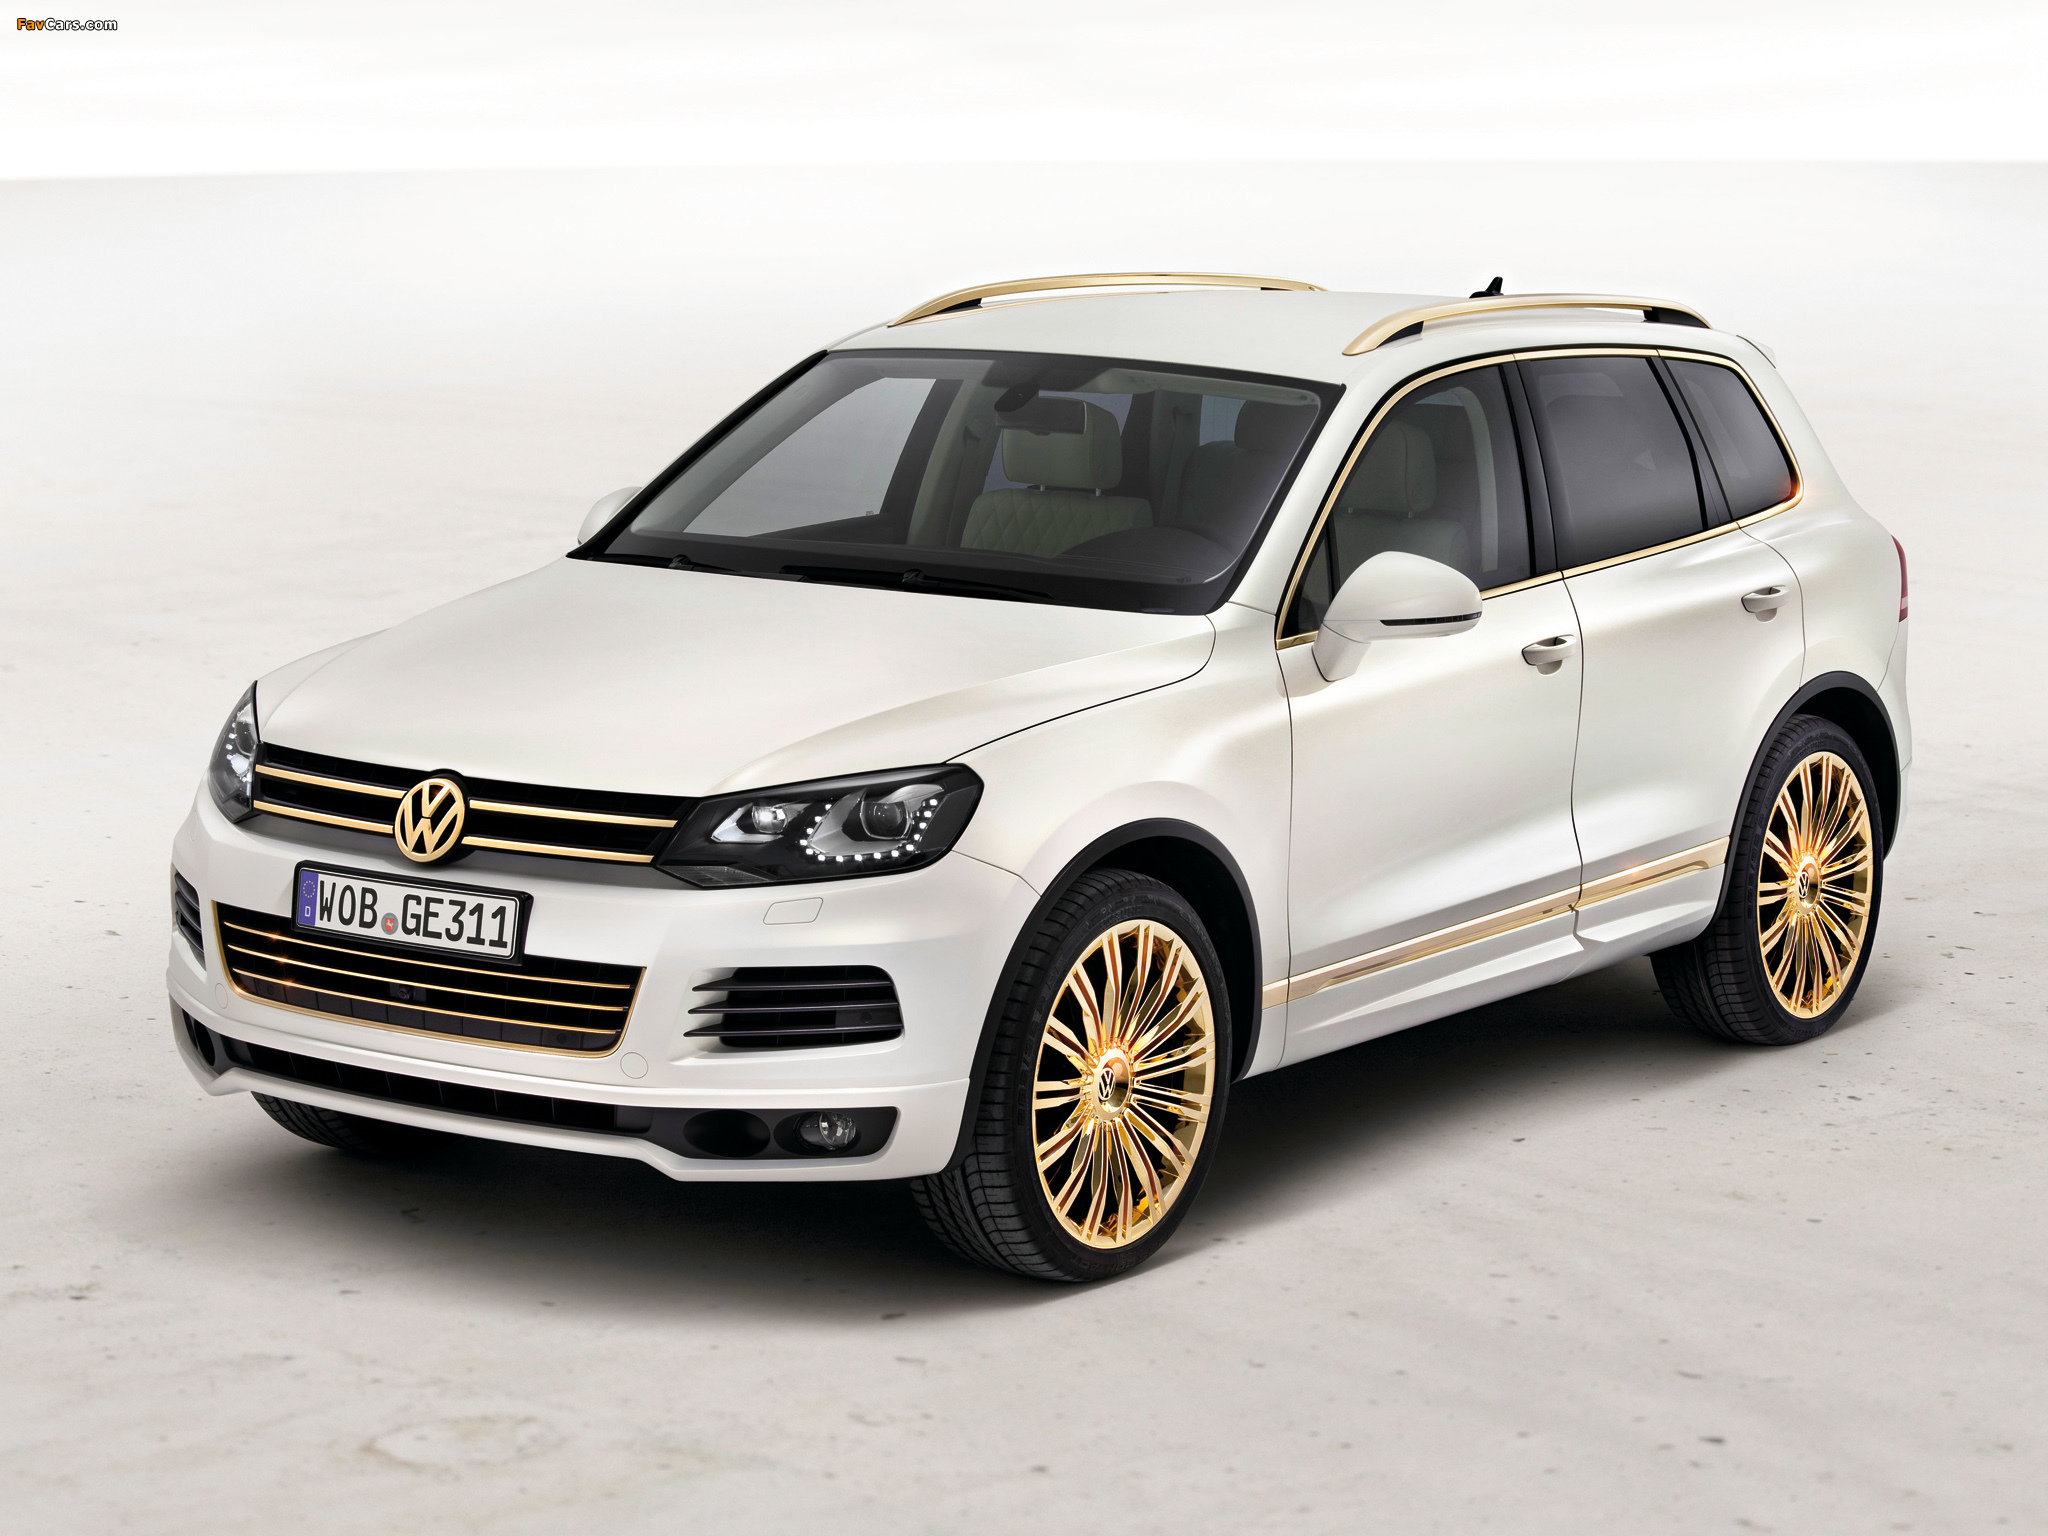 Volkswagen Touareg V8 TDI Gold Edition Concept 2011 wallpapers (2048 x 1536)